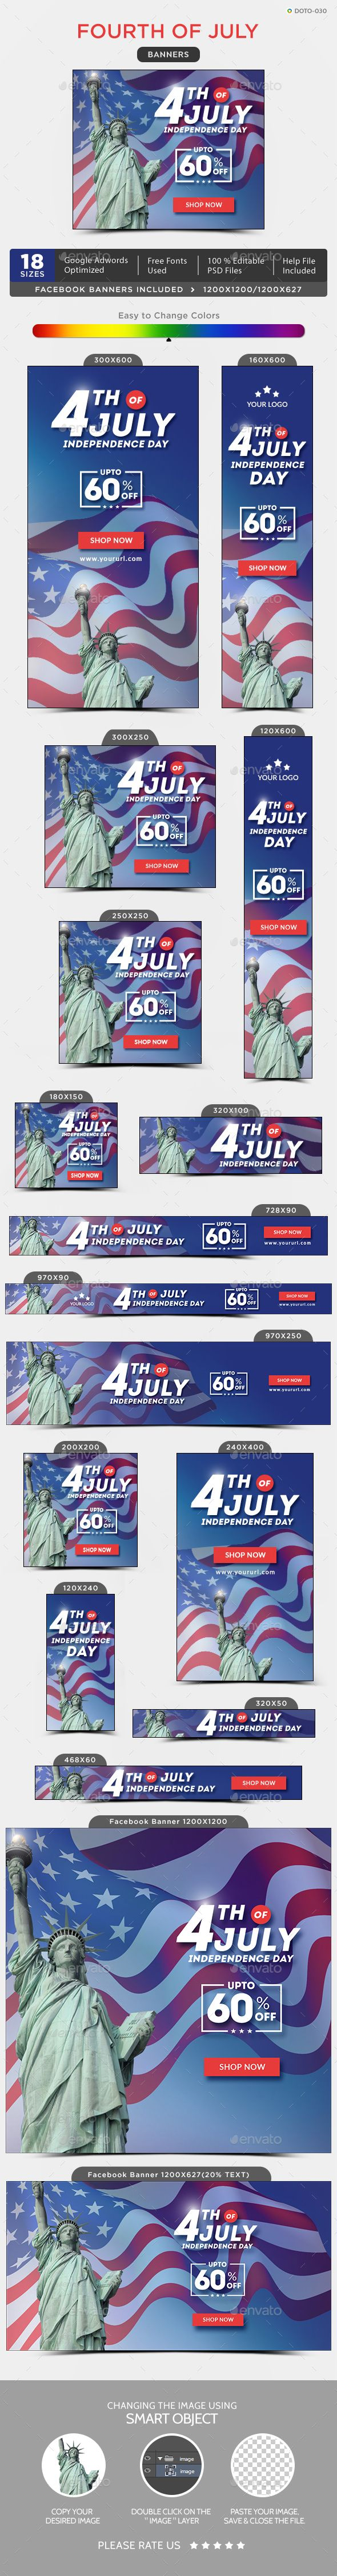 Independence Day Sale Banners — Photoshop PSD #gif banner #animated banner • Available here → https://graphicriver.net/item/independence-day-sale-banners/20220111?ref=pxcr